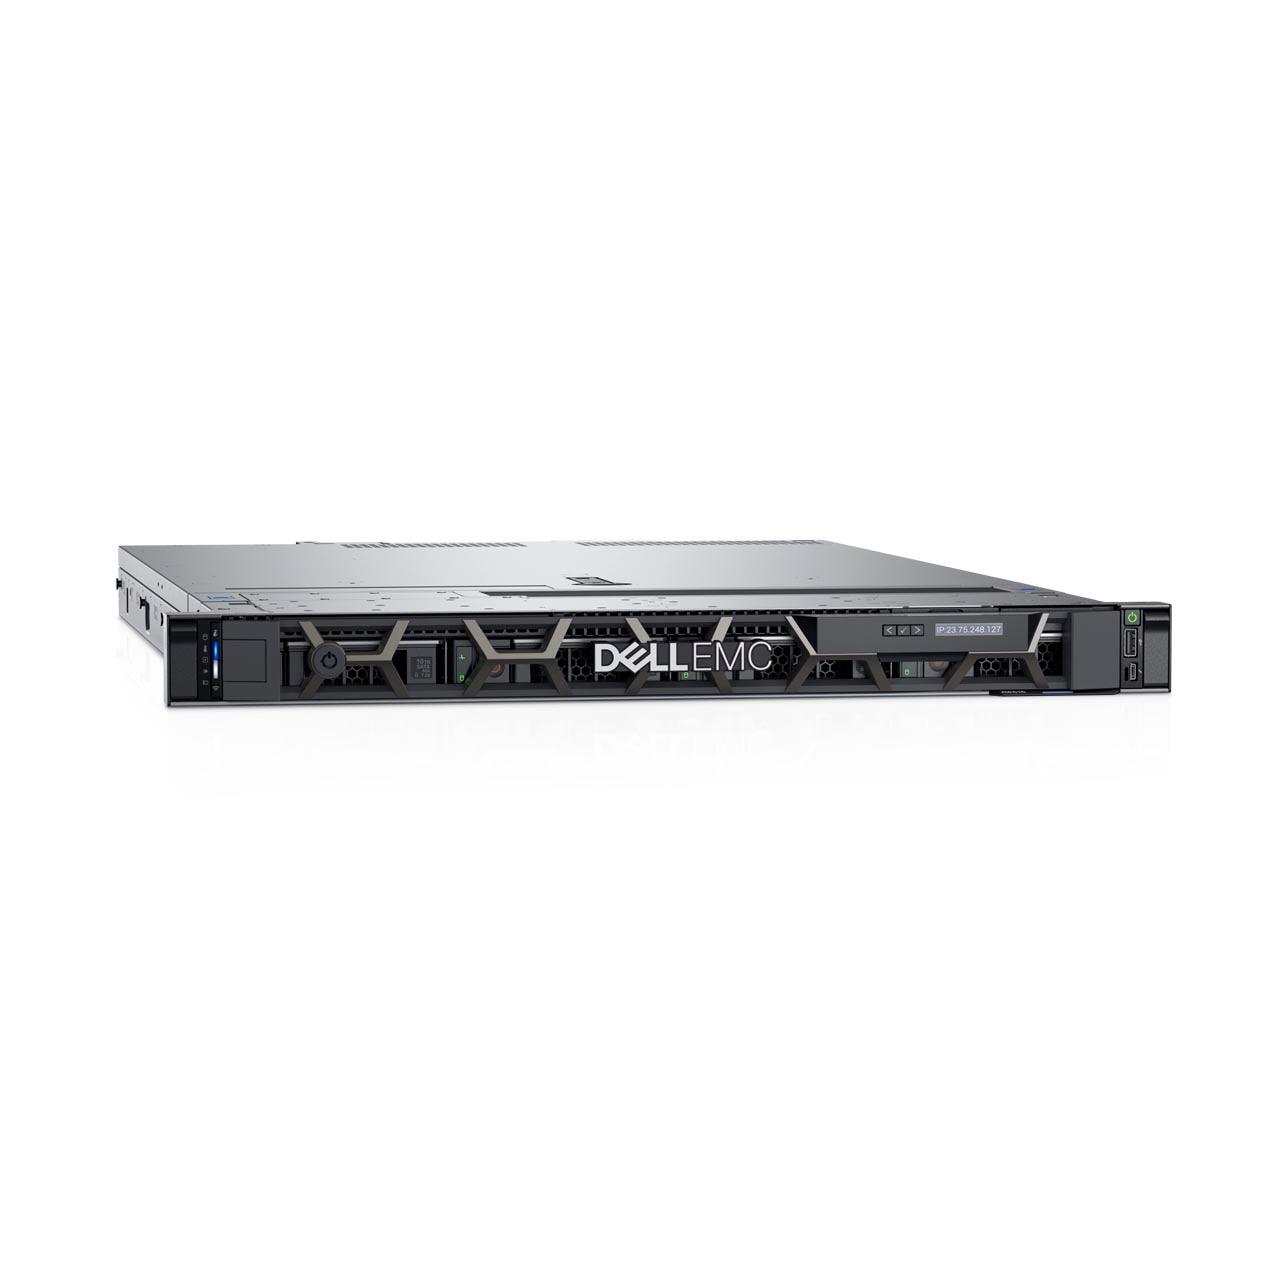 PowerEdge R6515 Server